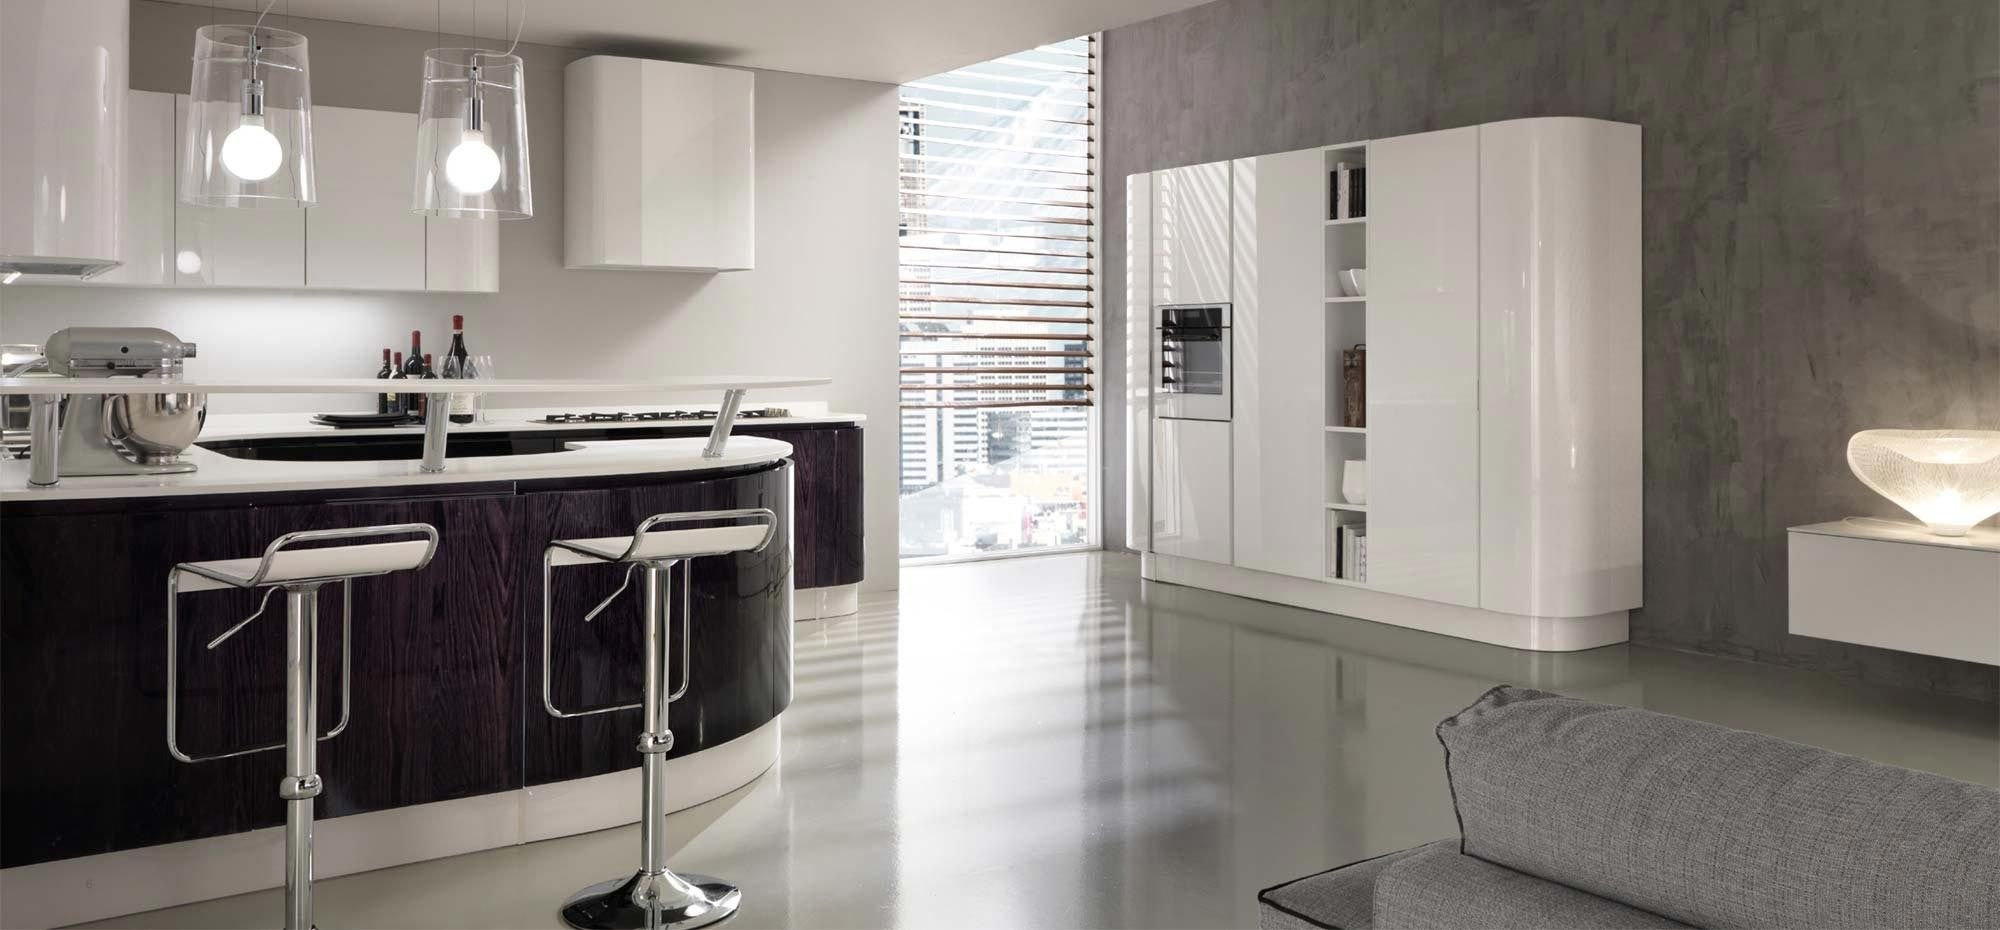 Berloni kitchens - B50 | Architecture | Kitchens and dining rooms ...